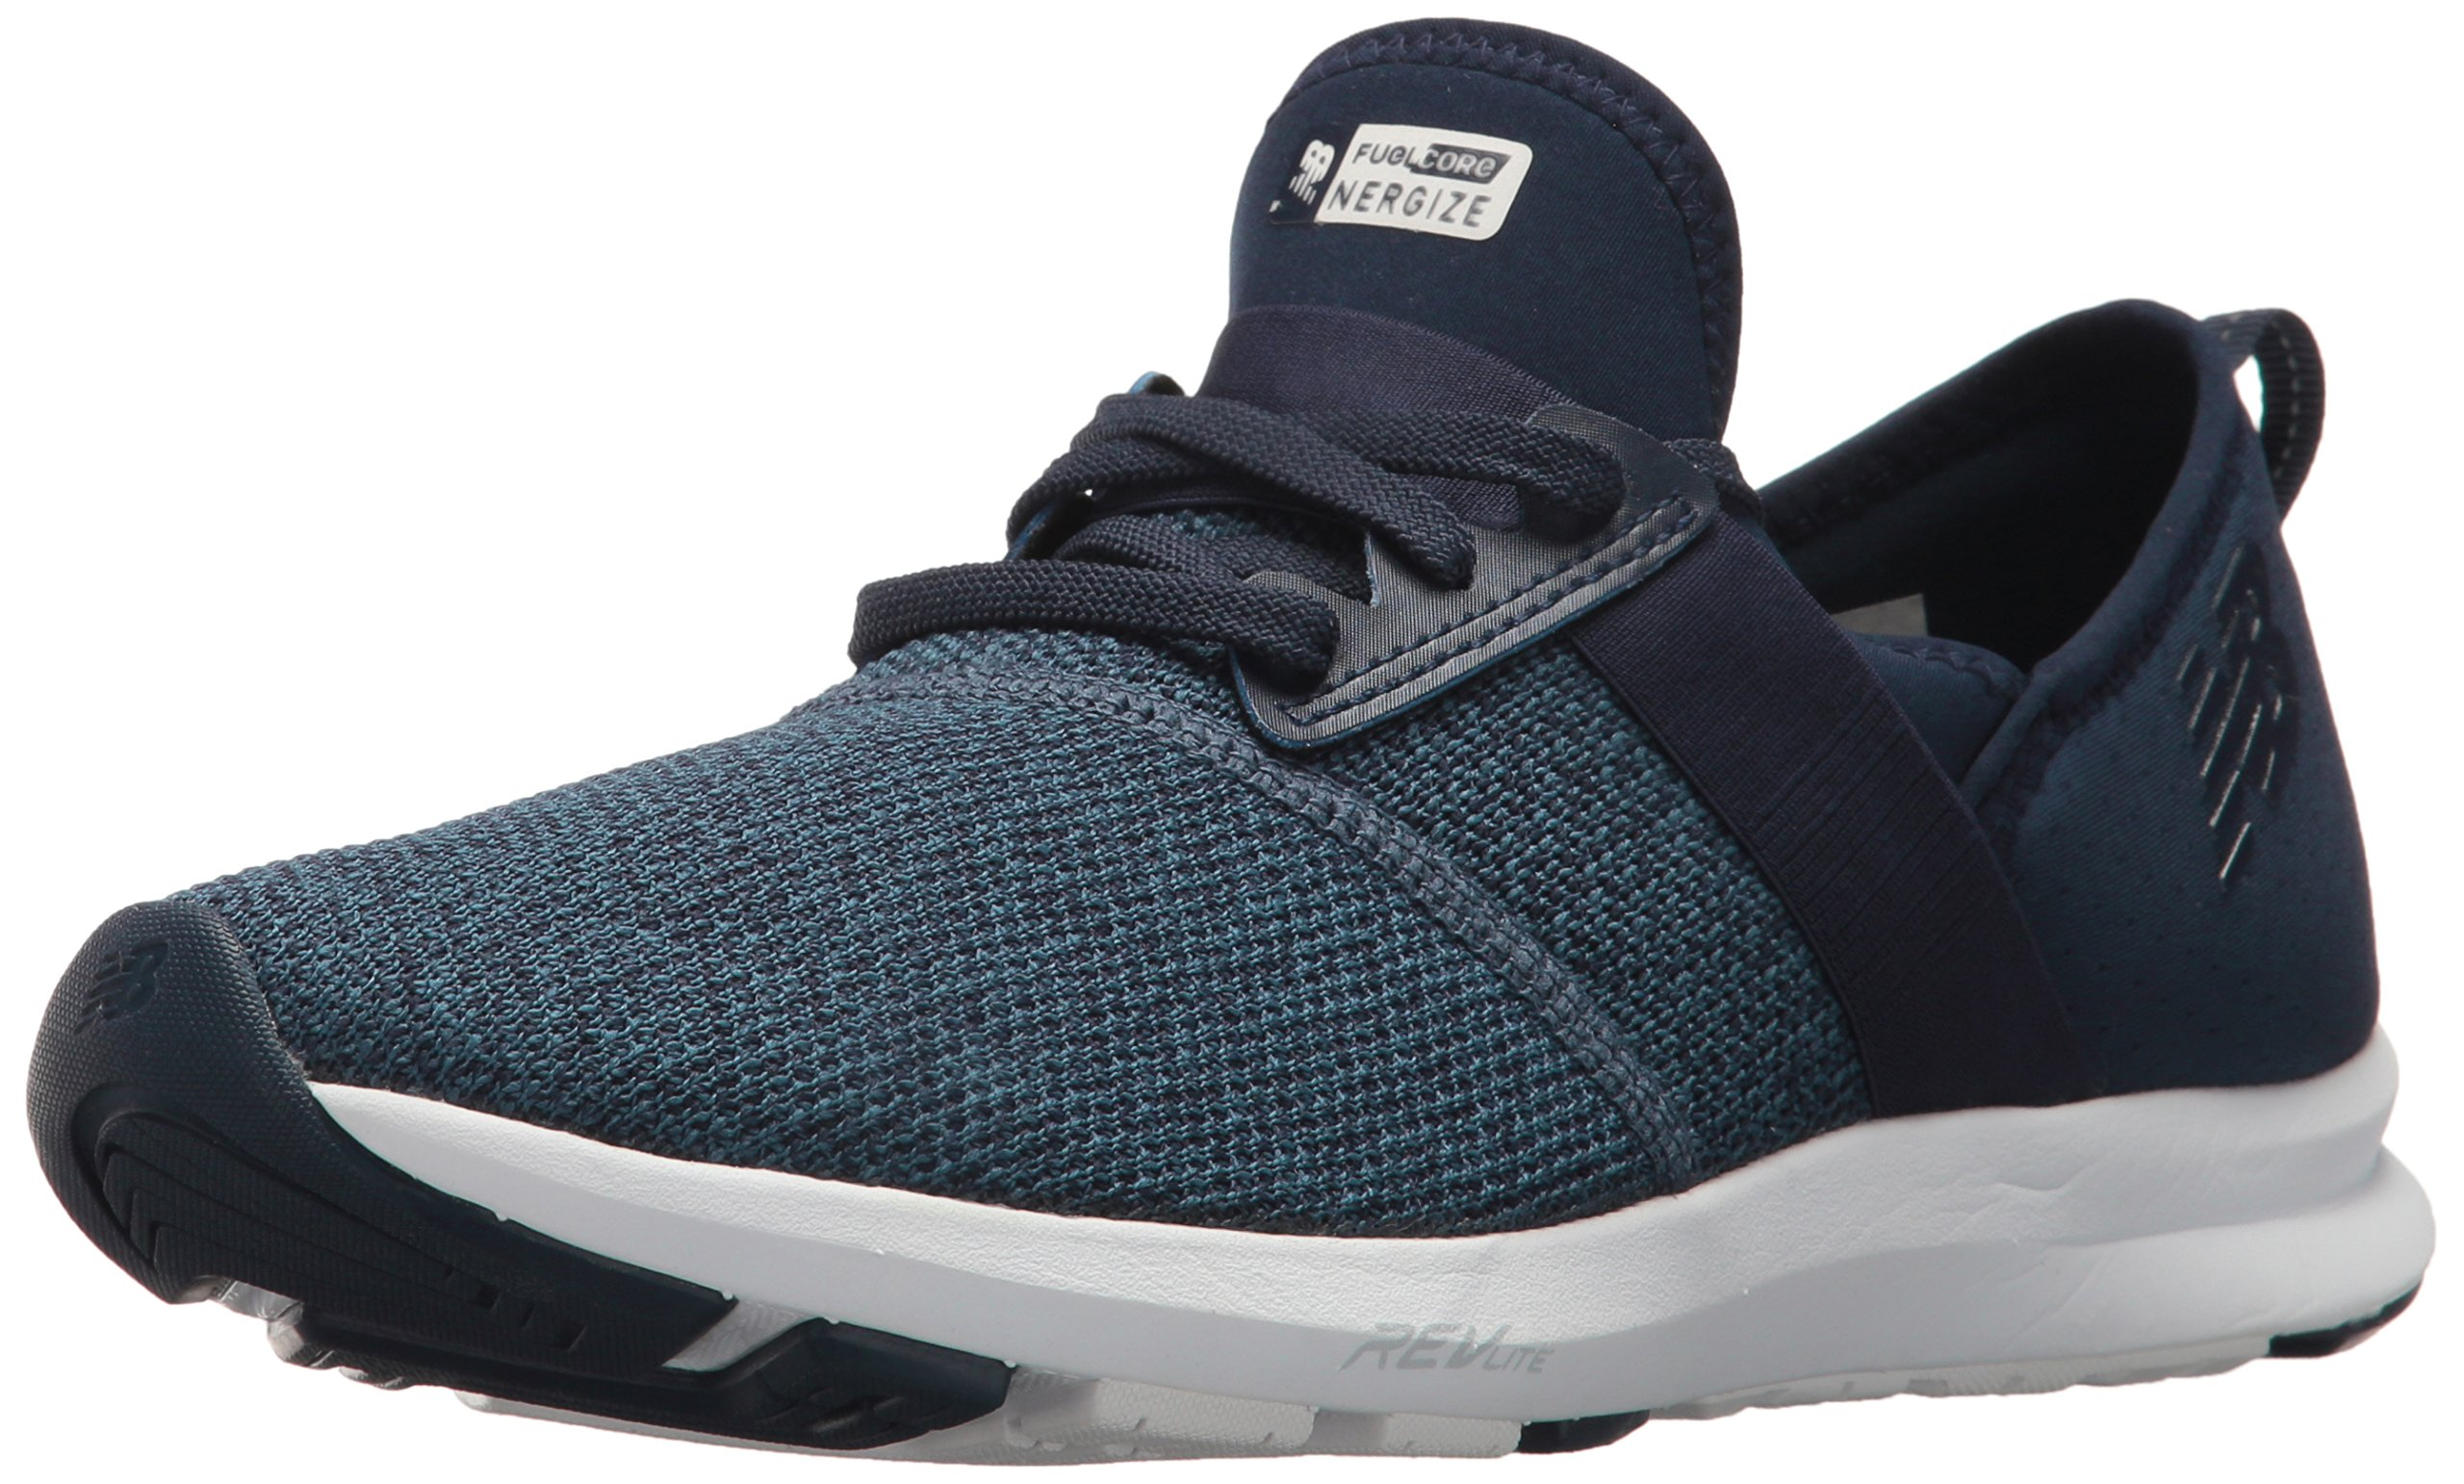 New Balance Women's FuelCore Nergize v1 FuelCore Training Shoe, Navy, 8 D US